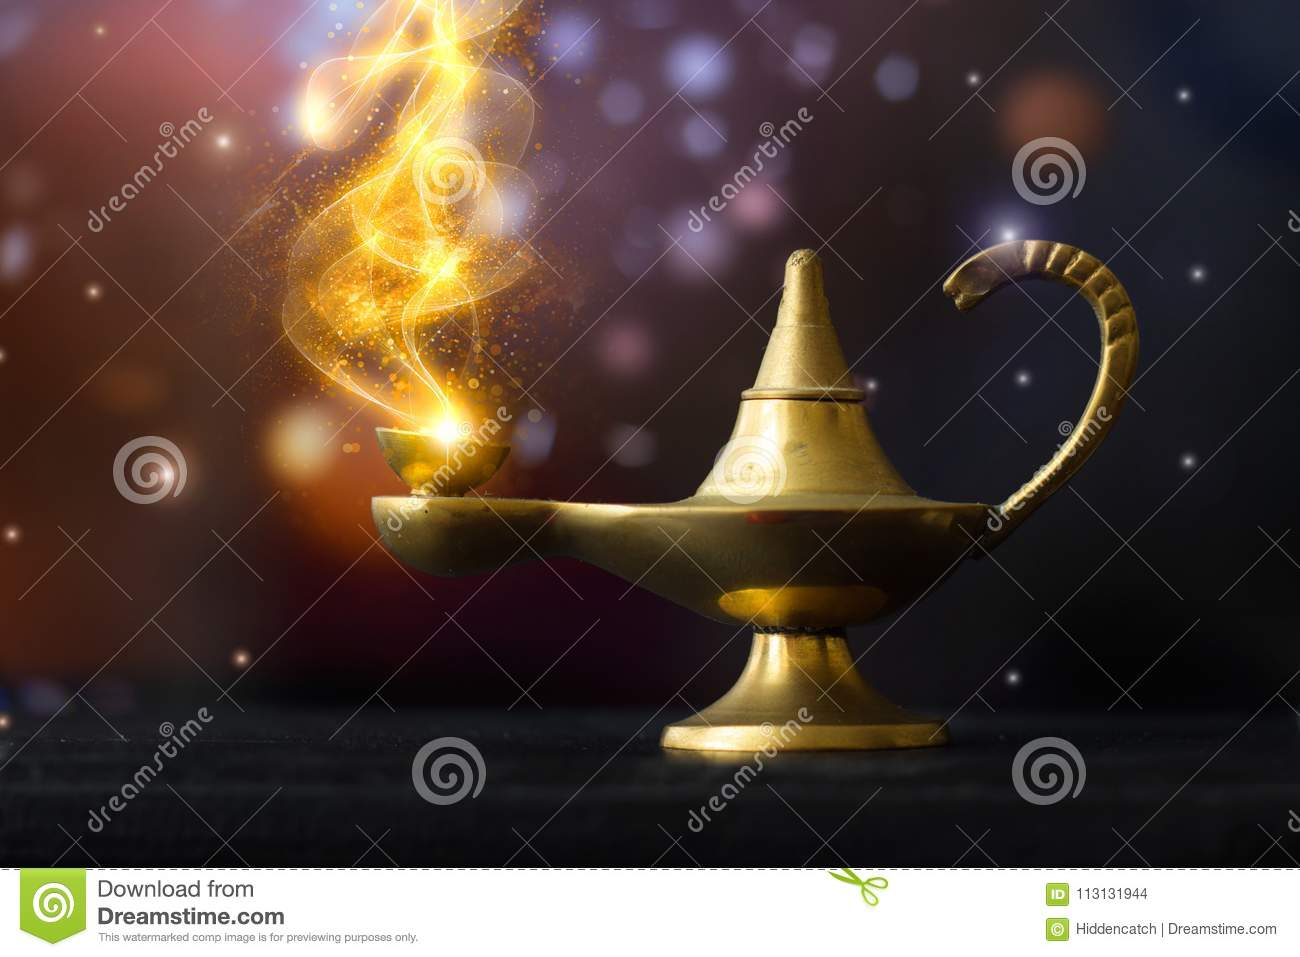 Magical Aladdin lamp, with golden glittery smoke coming out; make a wish